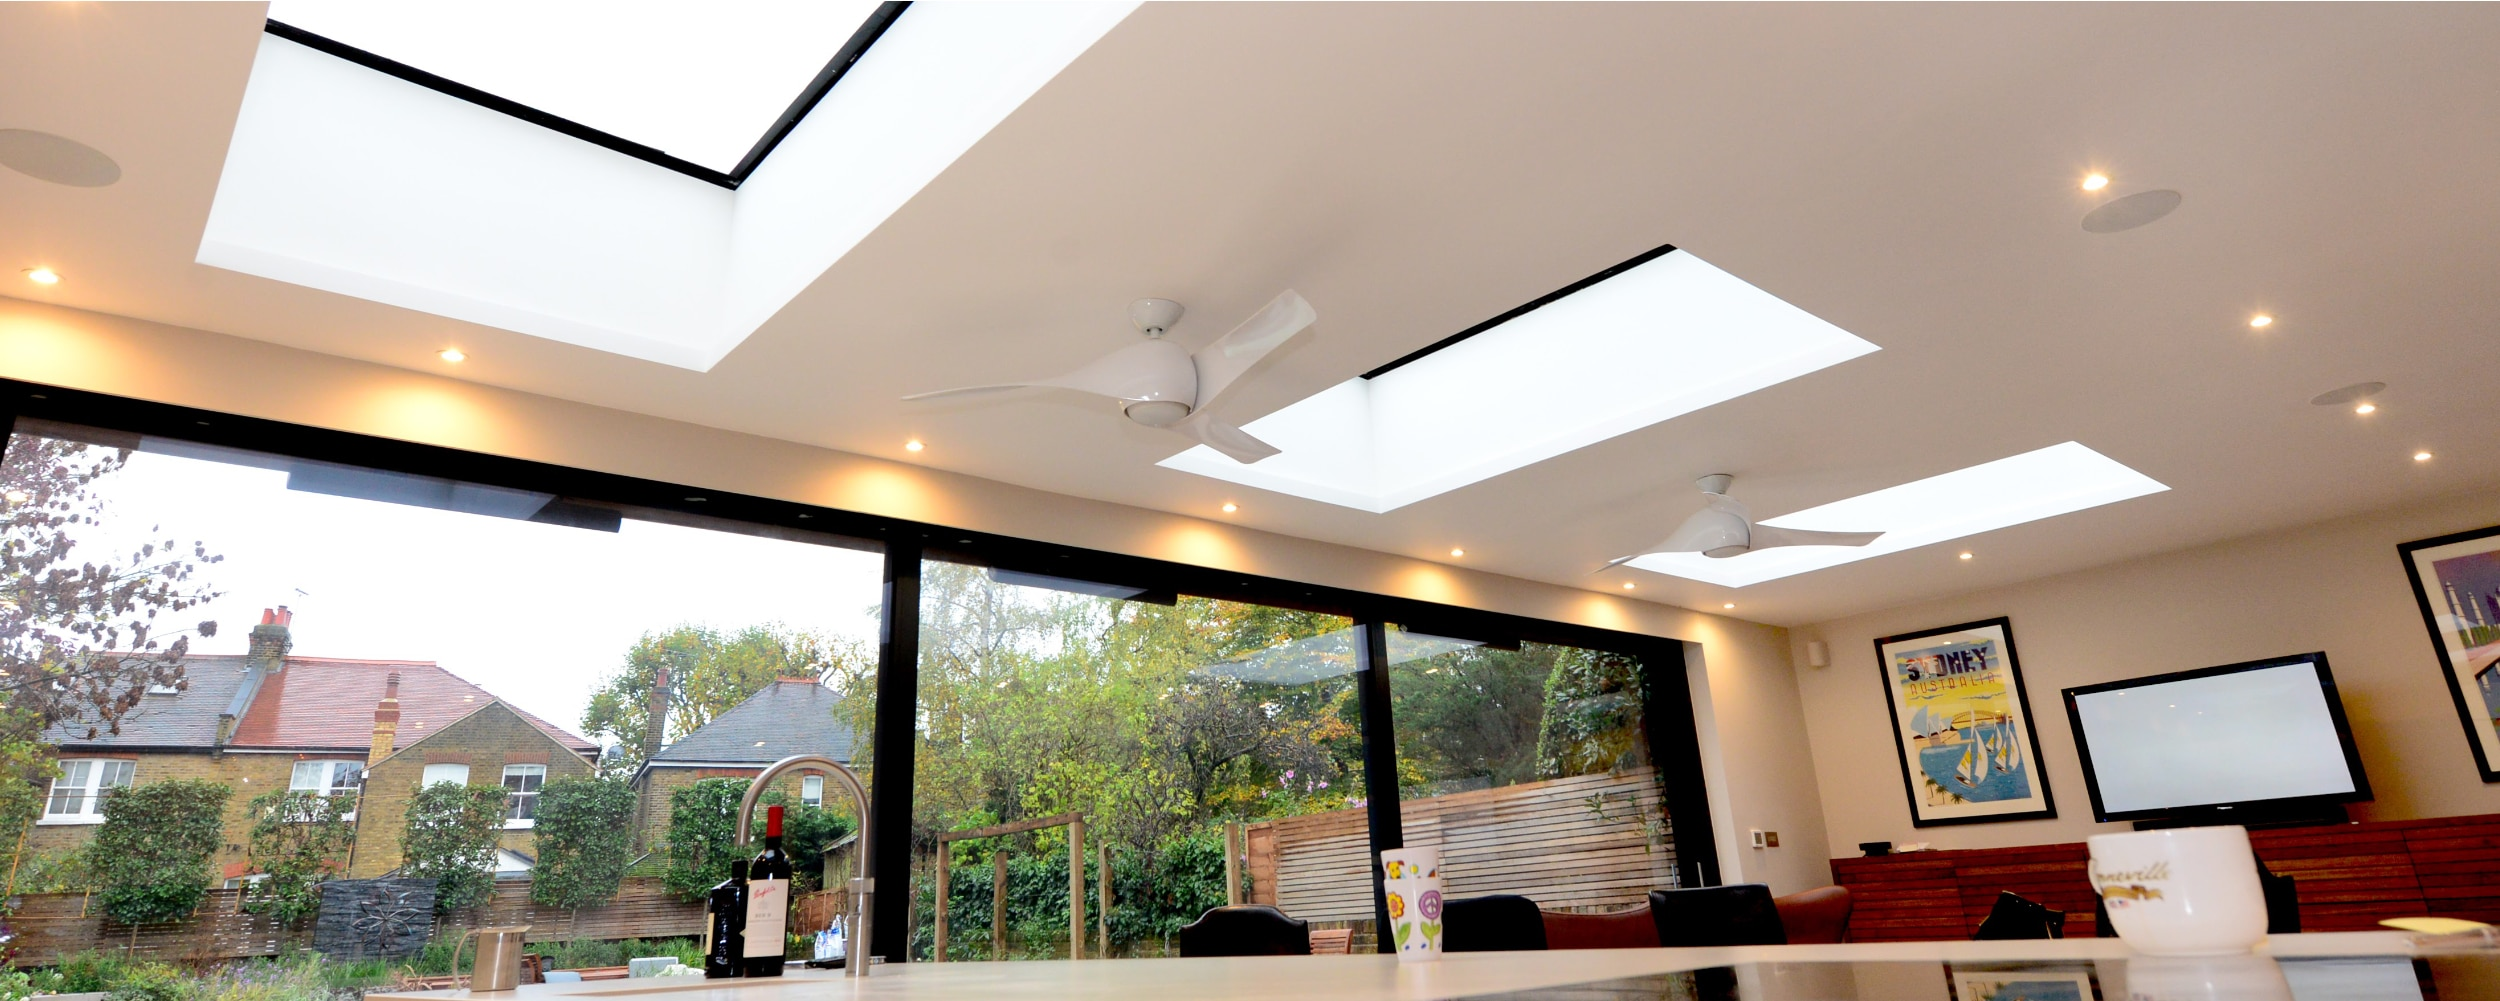 Stunning roof light installation by IDSystems